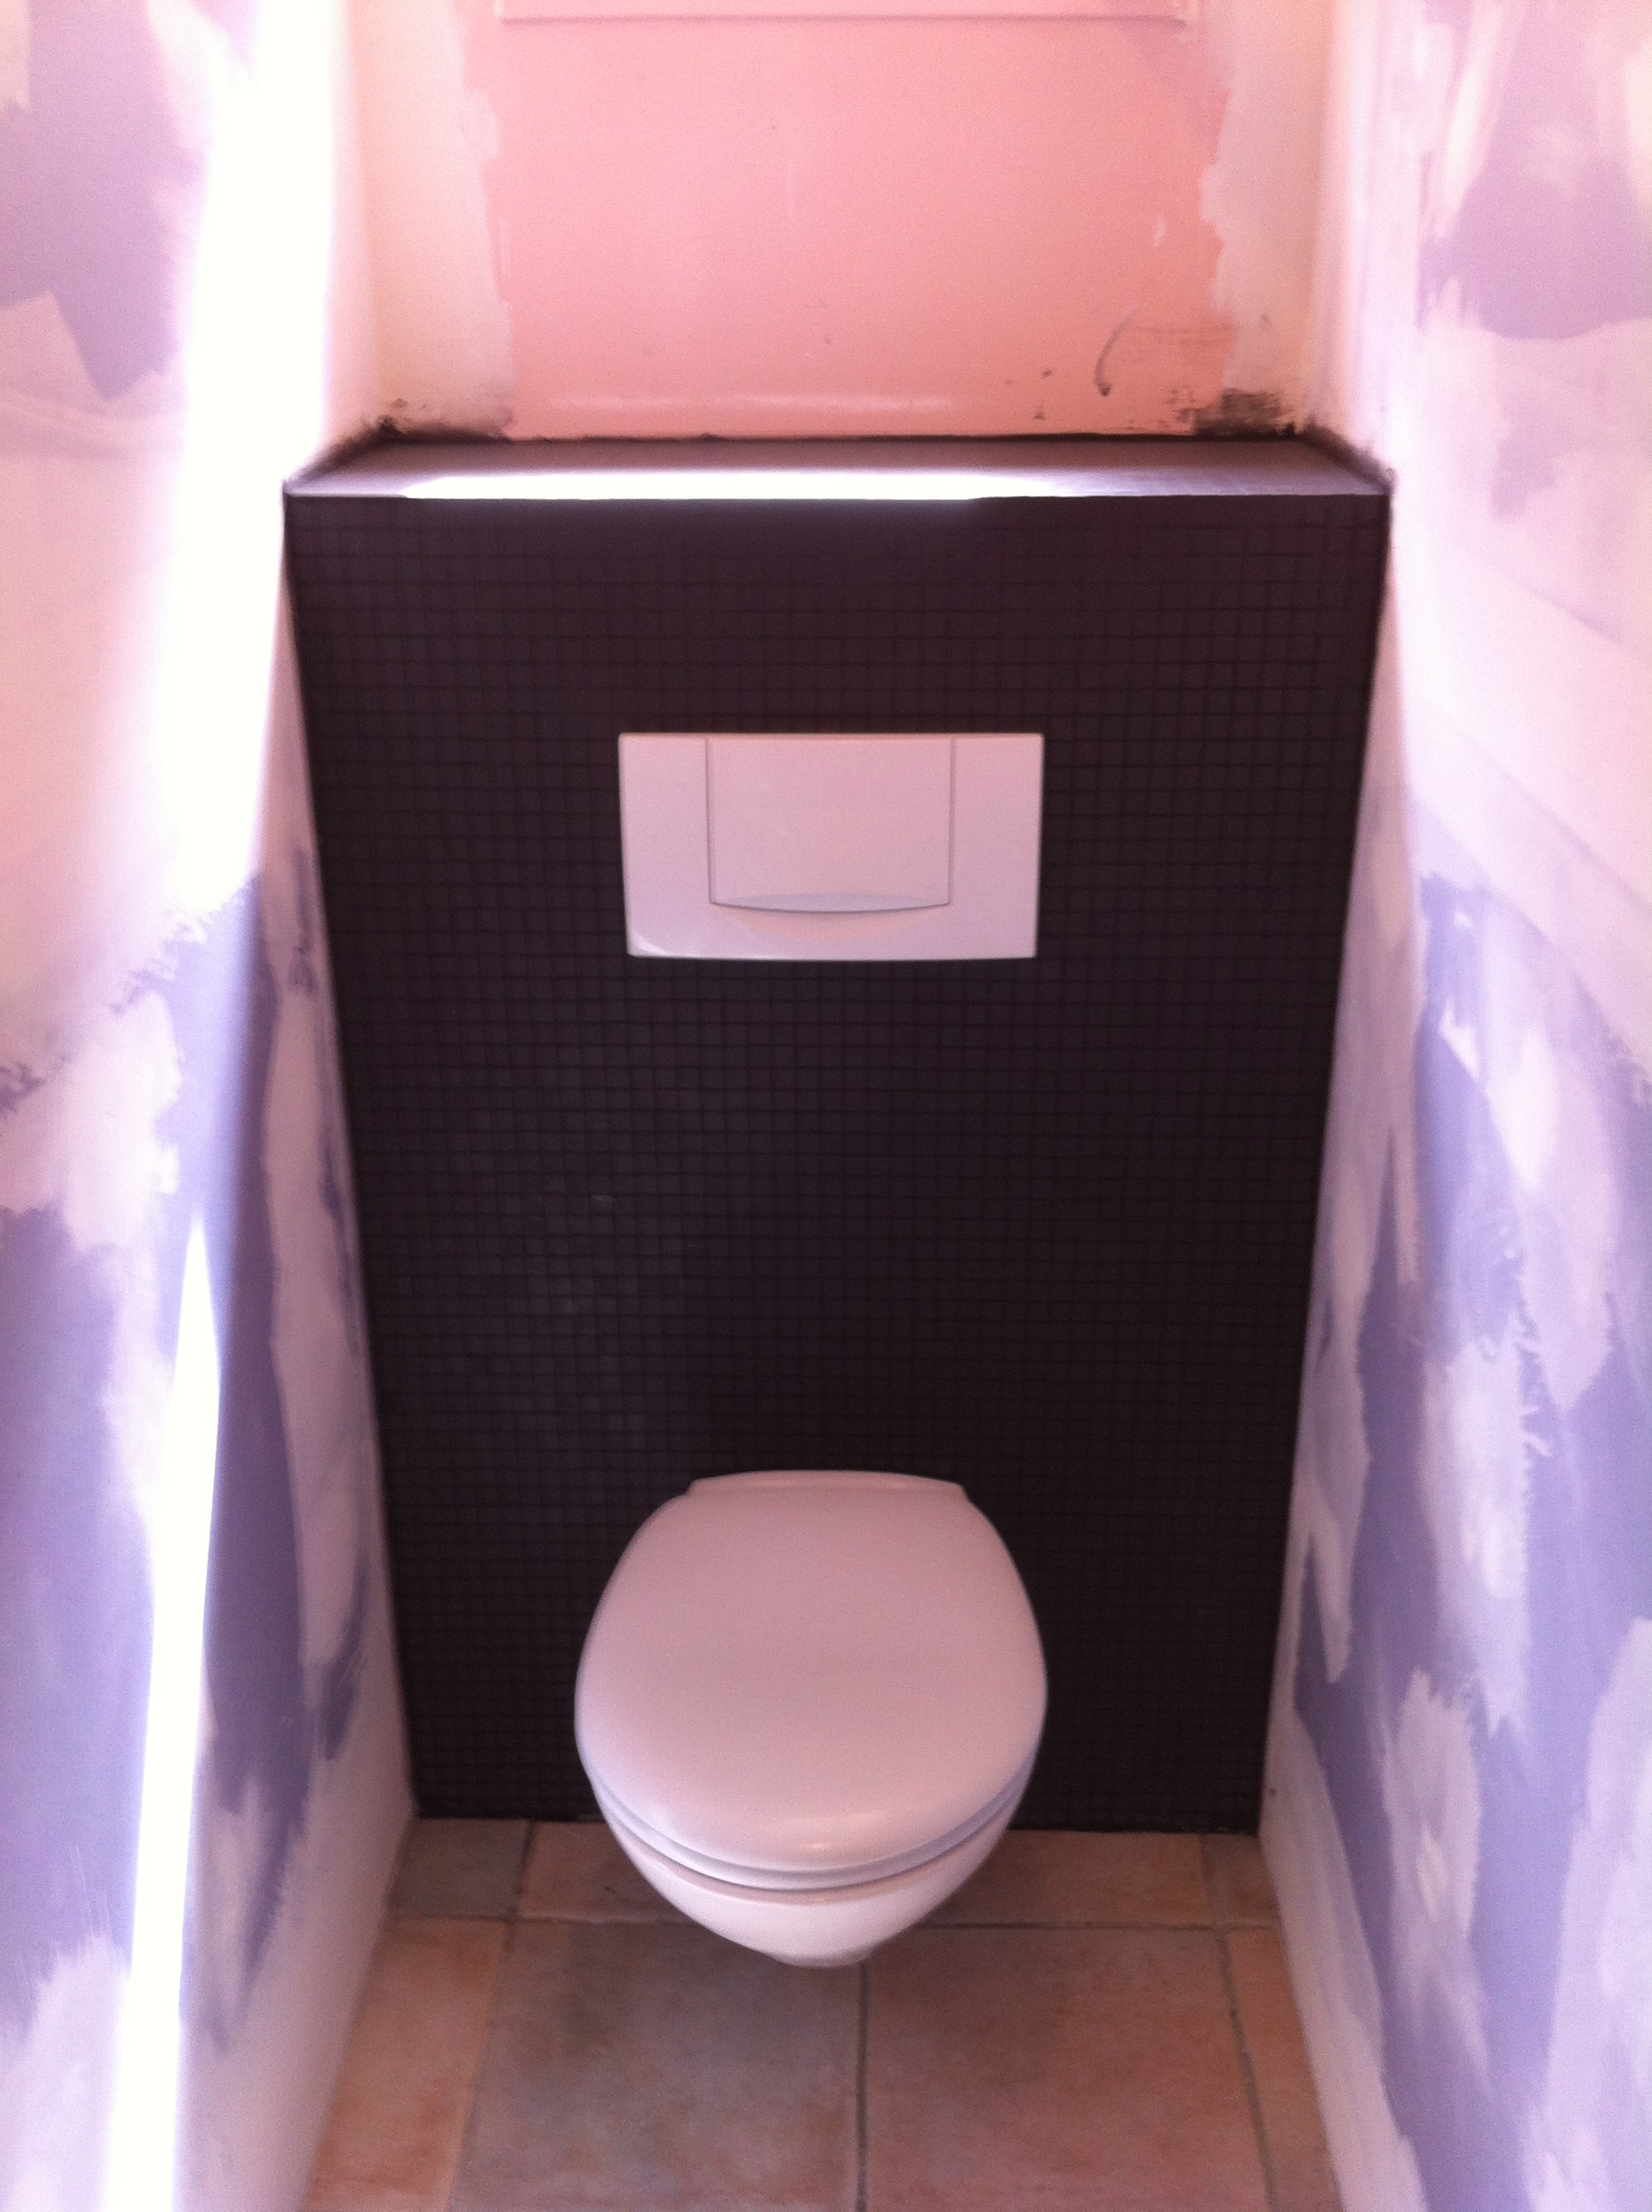 Wc suspendu dream house - Wc suspendu carrelage ...